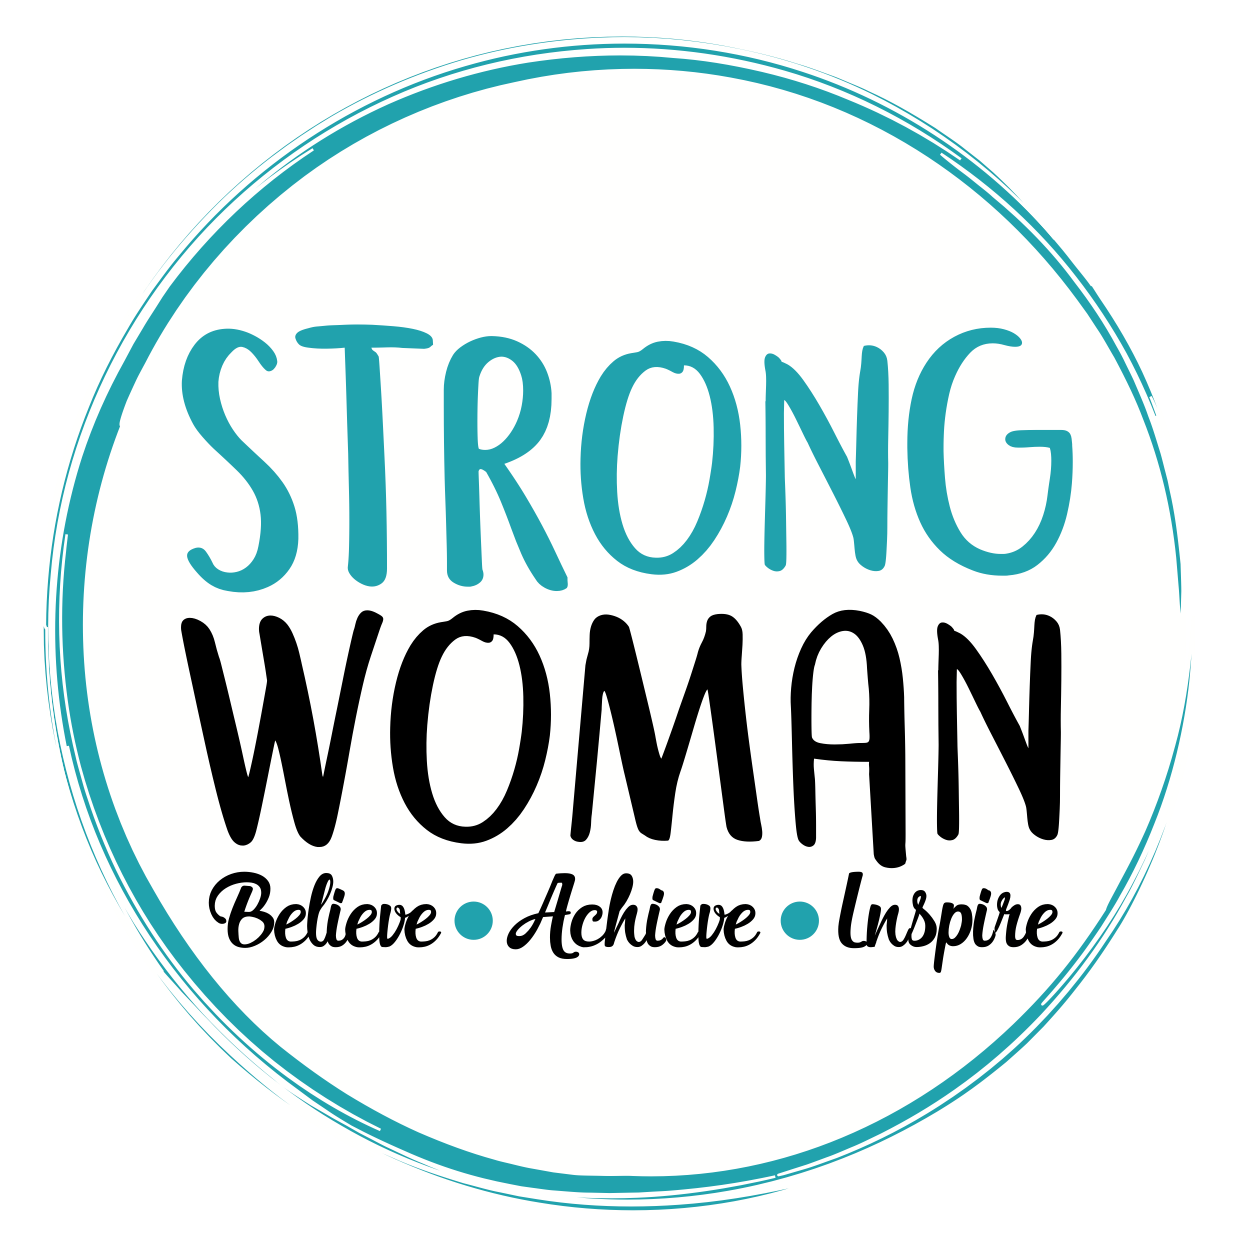 Strong Woman - Online Health & Fitness, Personal Training & Group Fitness Classes. Believe · Achieve · Inspire